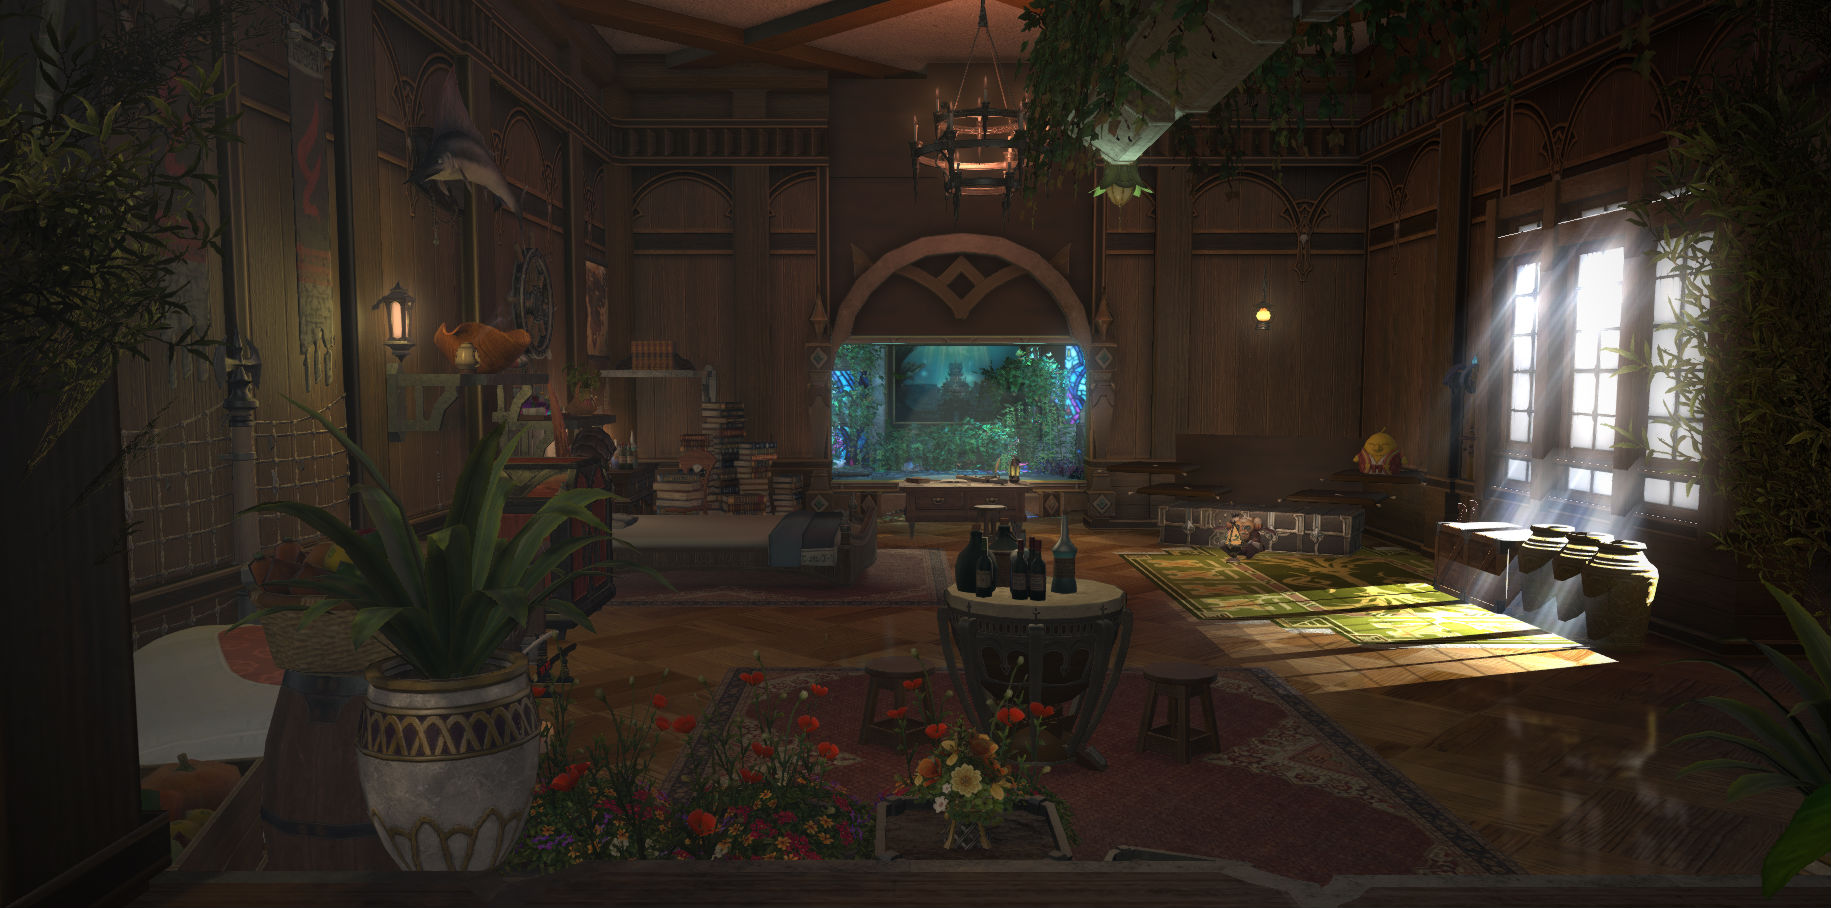 A Final Fantasy XIV player re-created the private quarters from Monster Hunter World screenshot